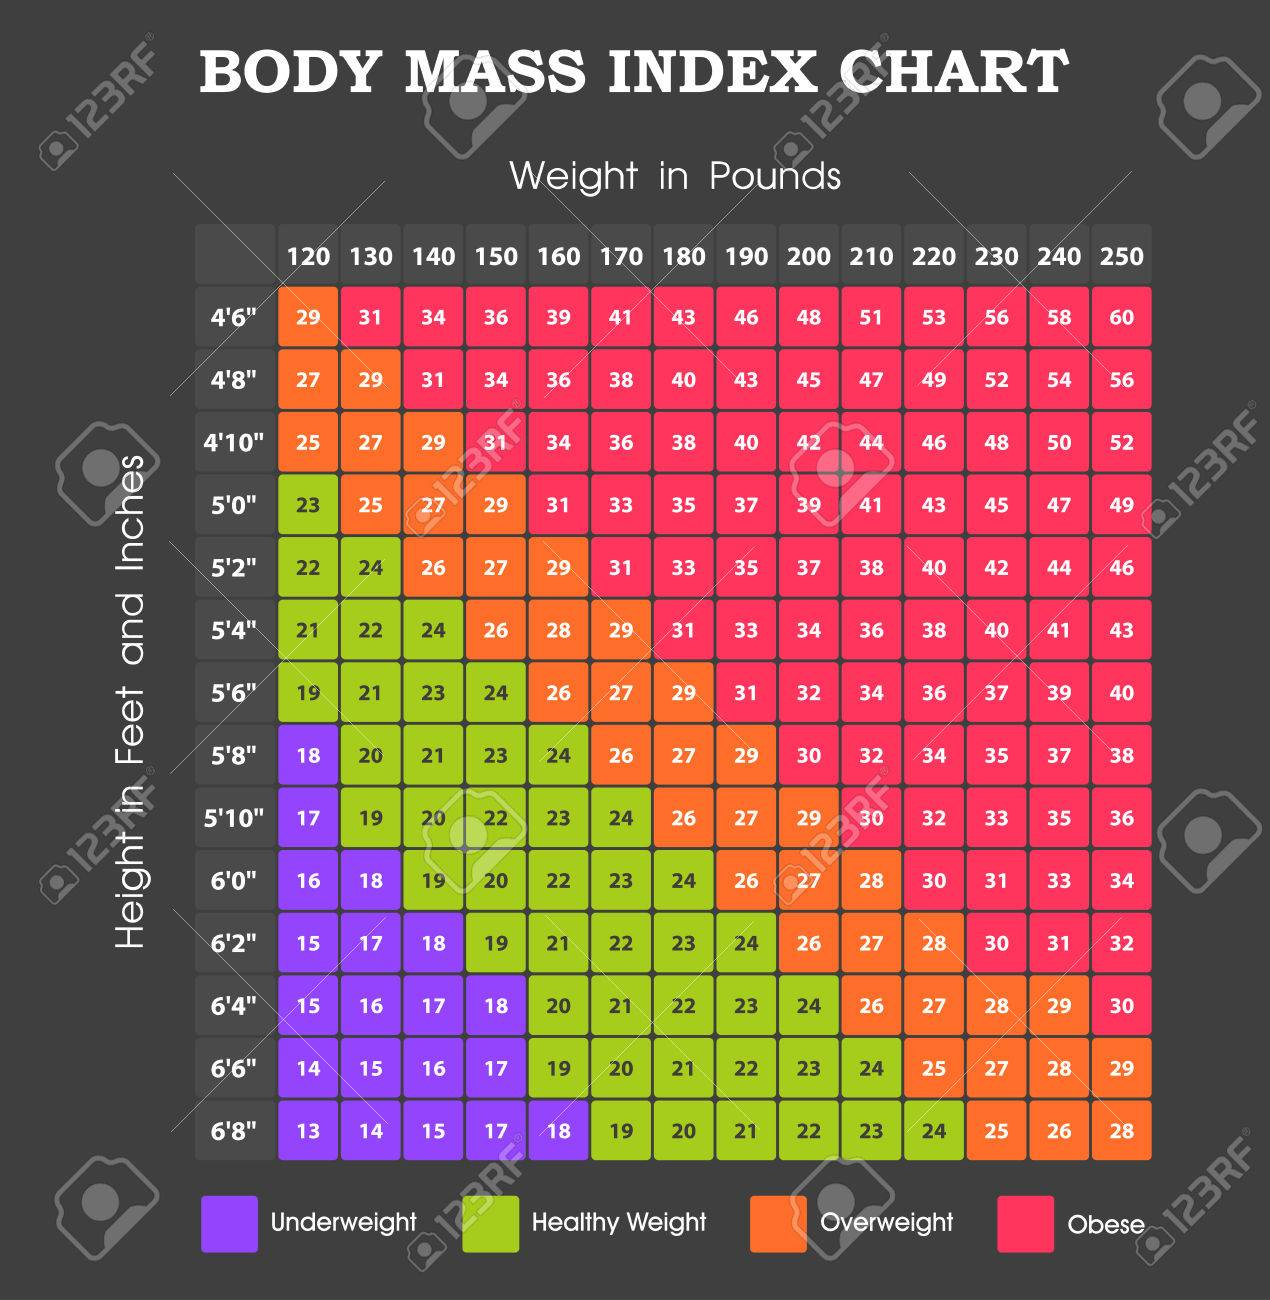 5 4 weight chart image collections free any chart examples bmi height and weight chart images chart example ideas body mass index chart height an weight nvjuhfo Choice Image